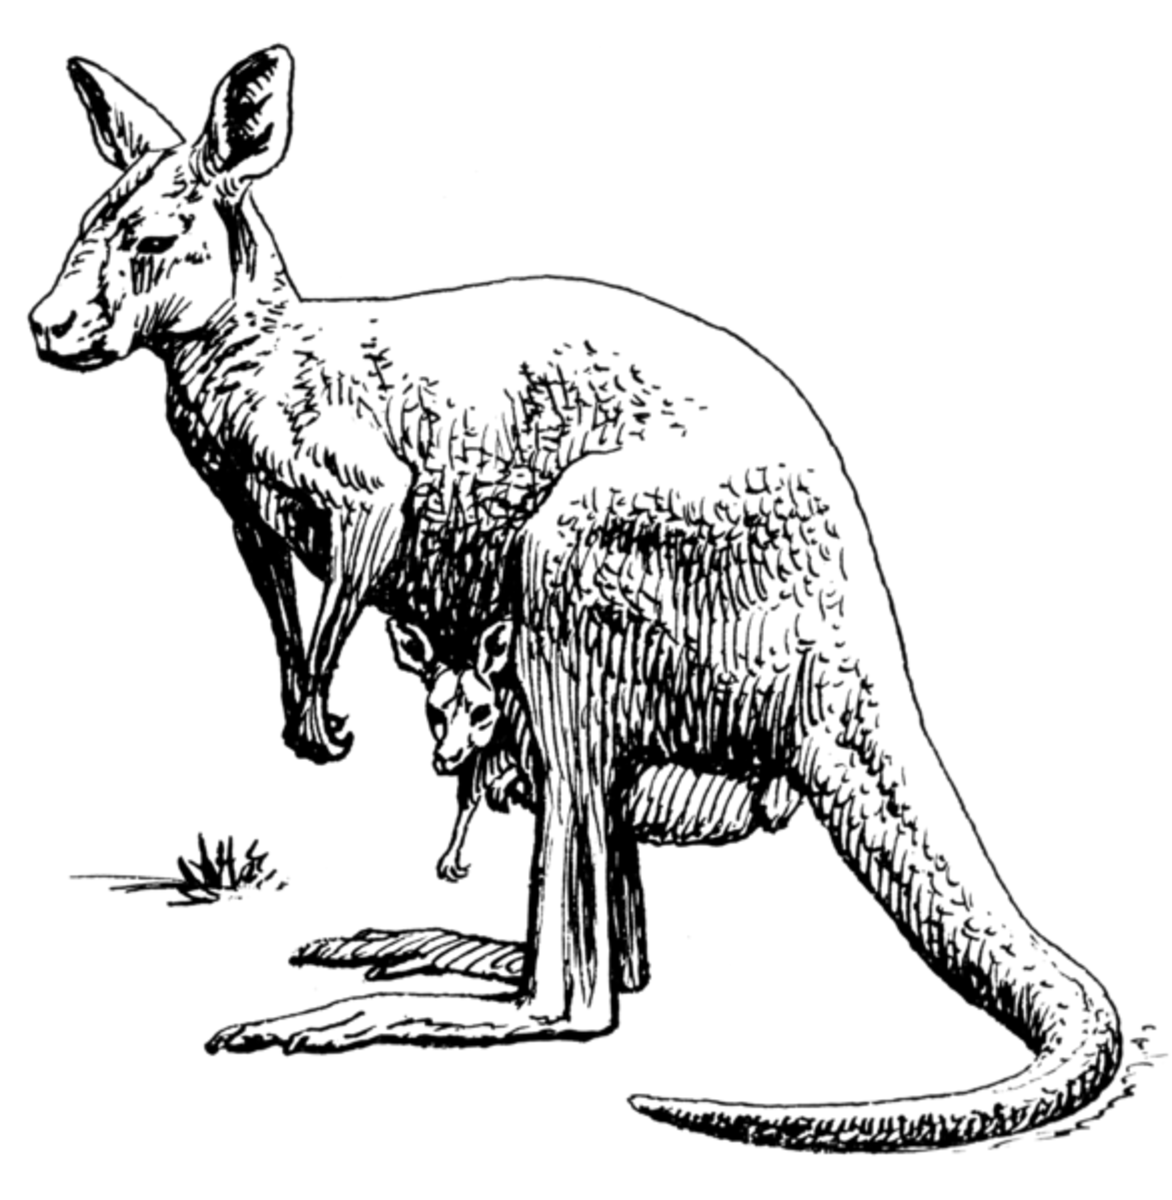 Is there a rare species of kangaroo living in the dark corners of North America?